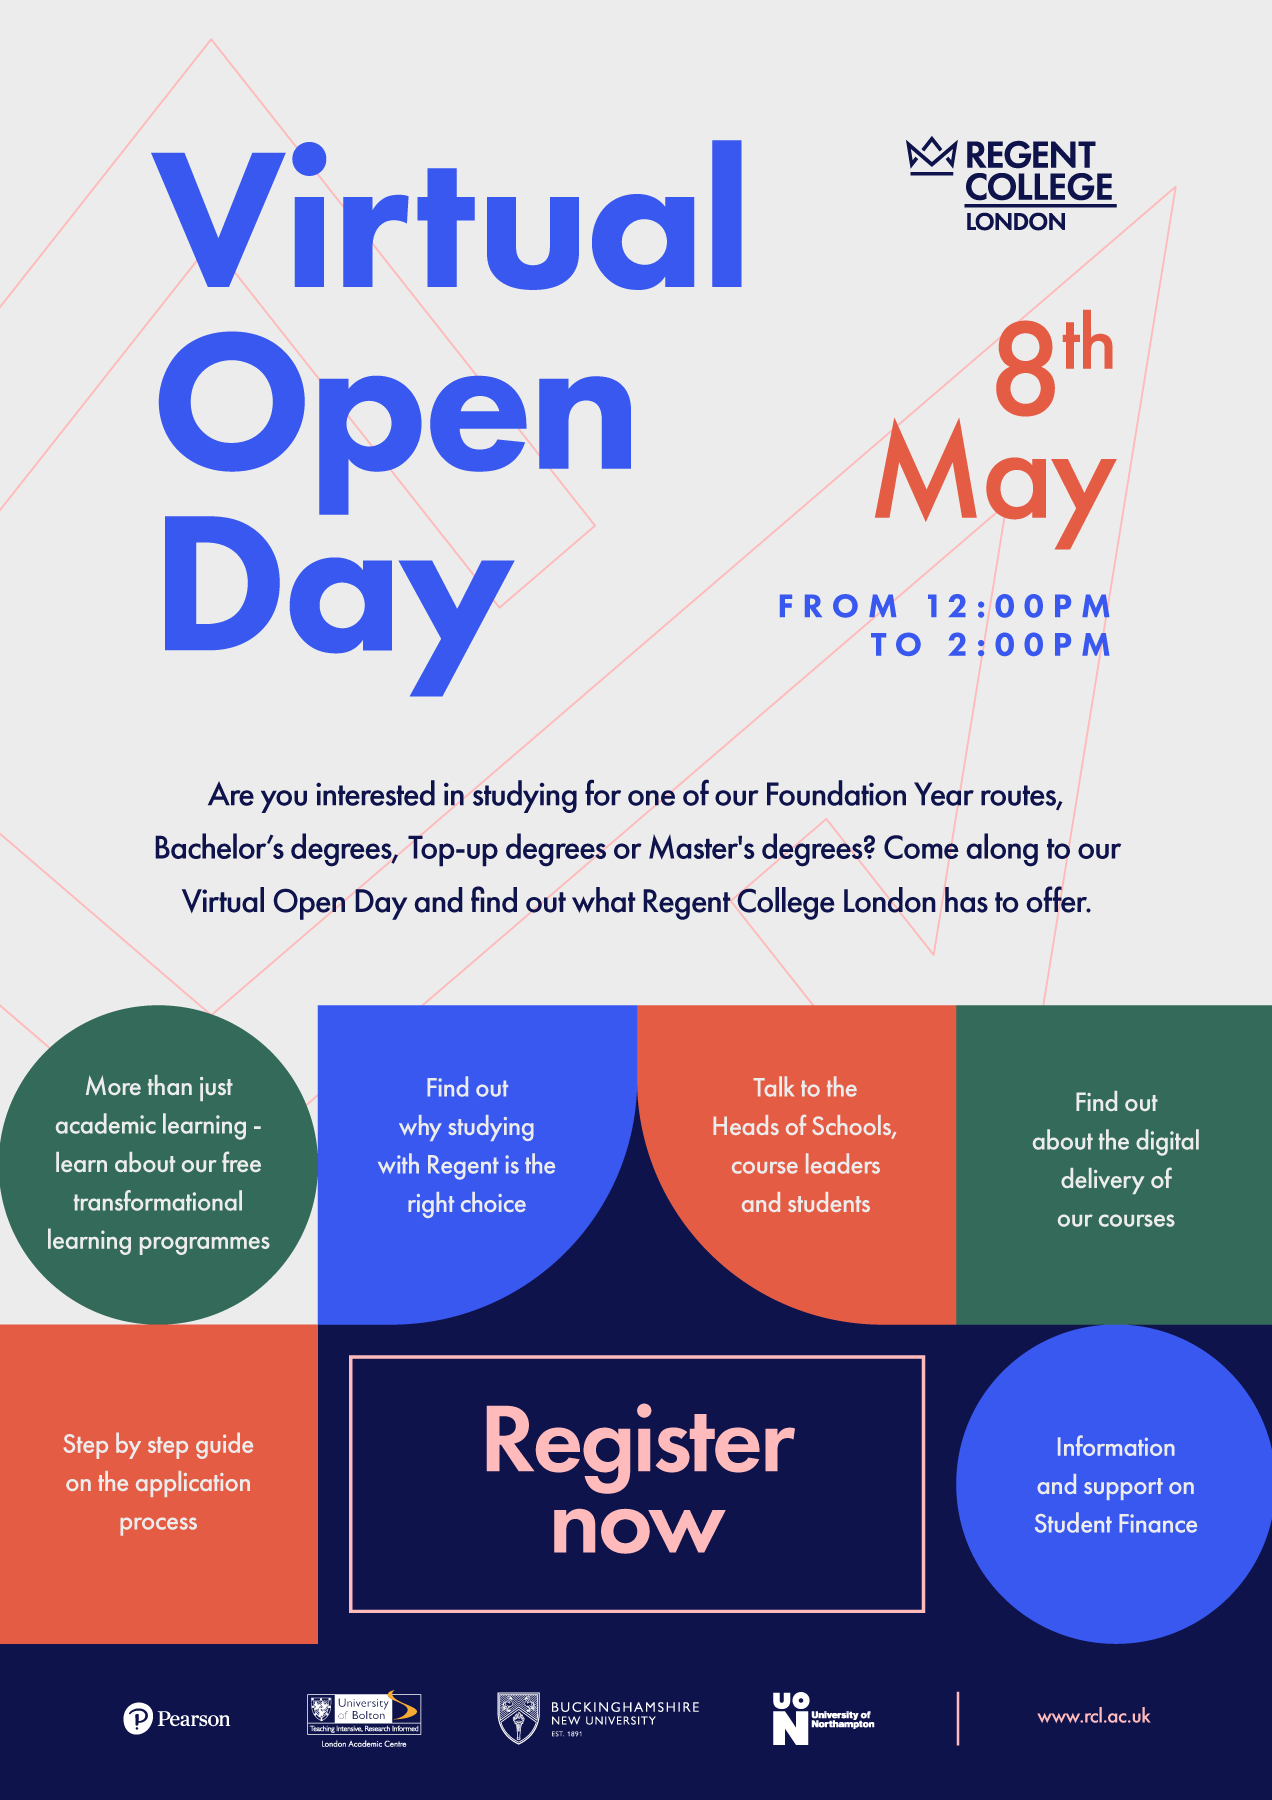 Register to attend a Virtual Open Day event - Weekend Open Days